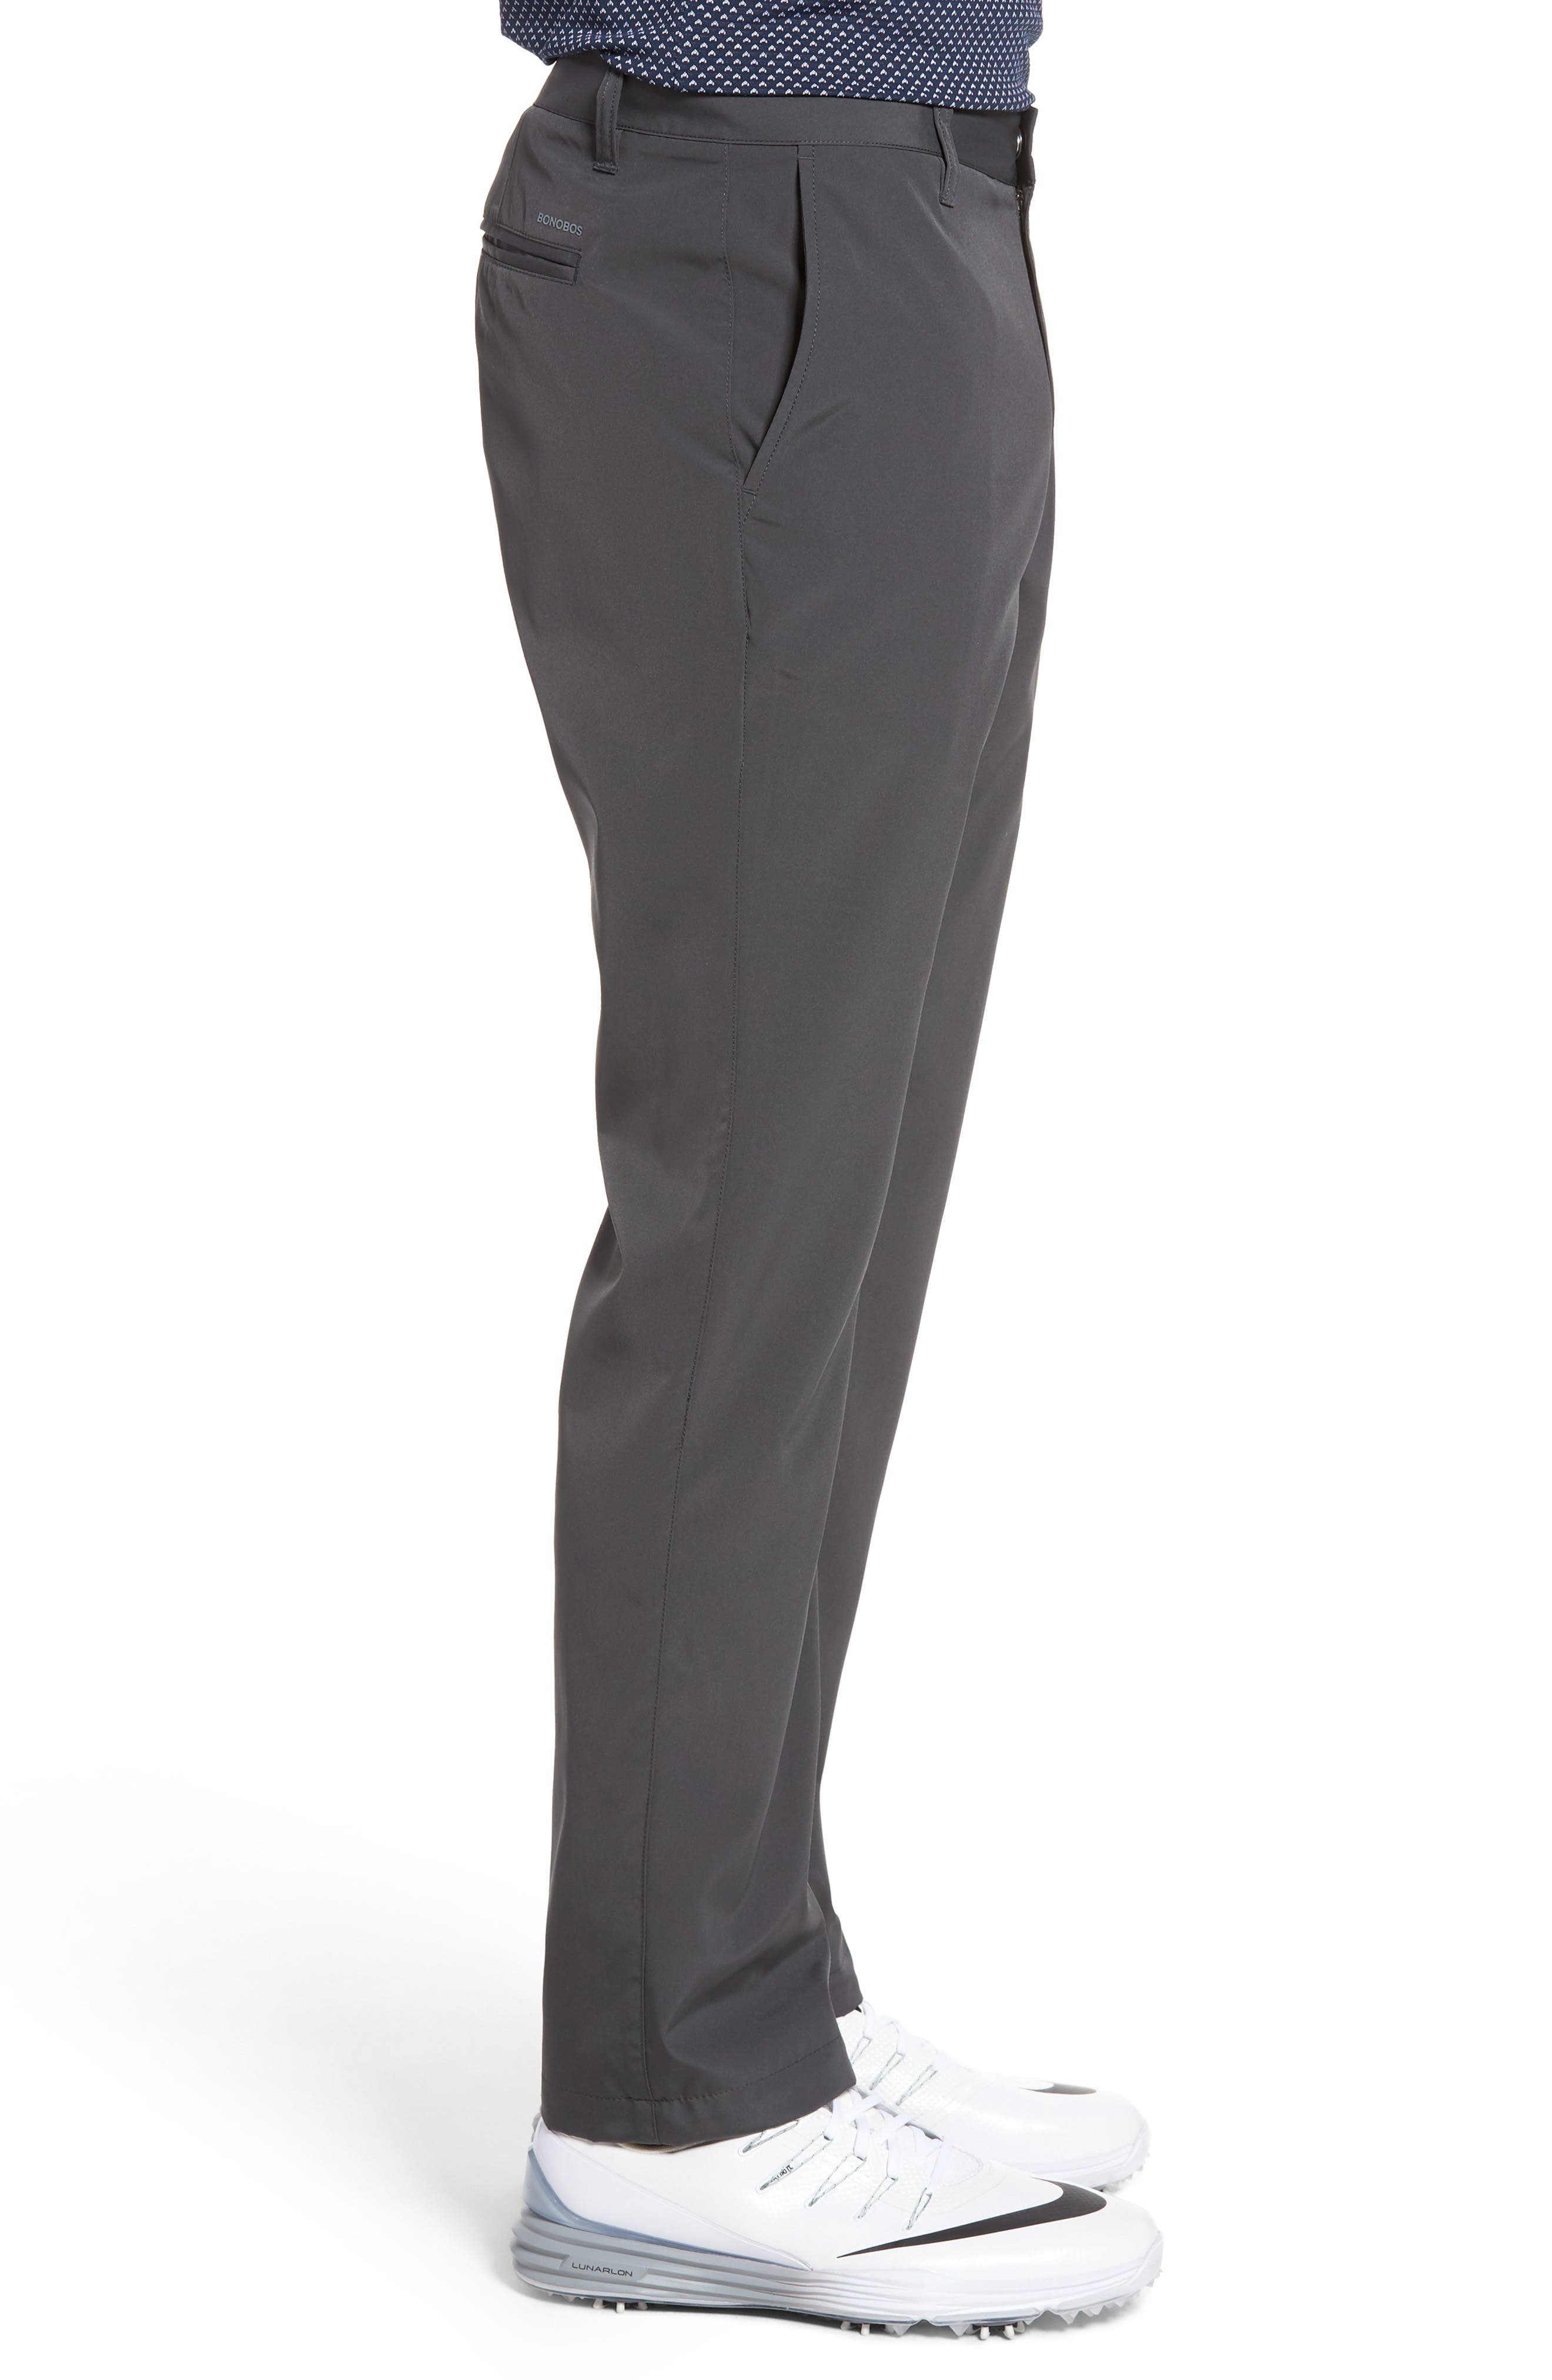 Lightweight Highland Slim Fit Golf Pants,                             Alternate thumbnail 3, color,                             Charcoal